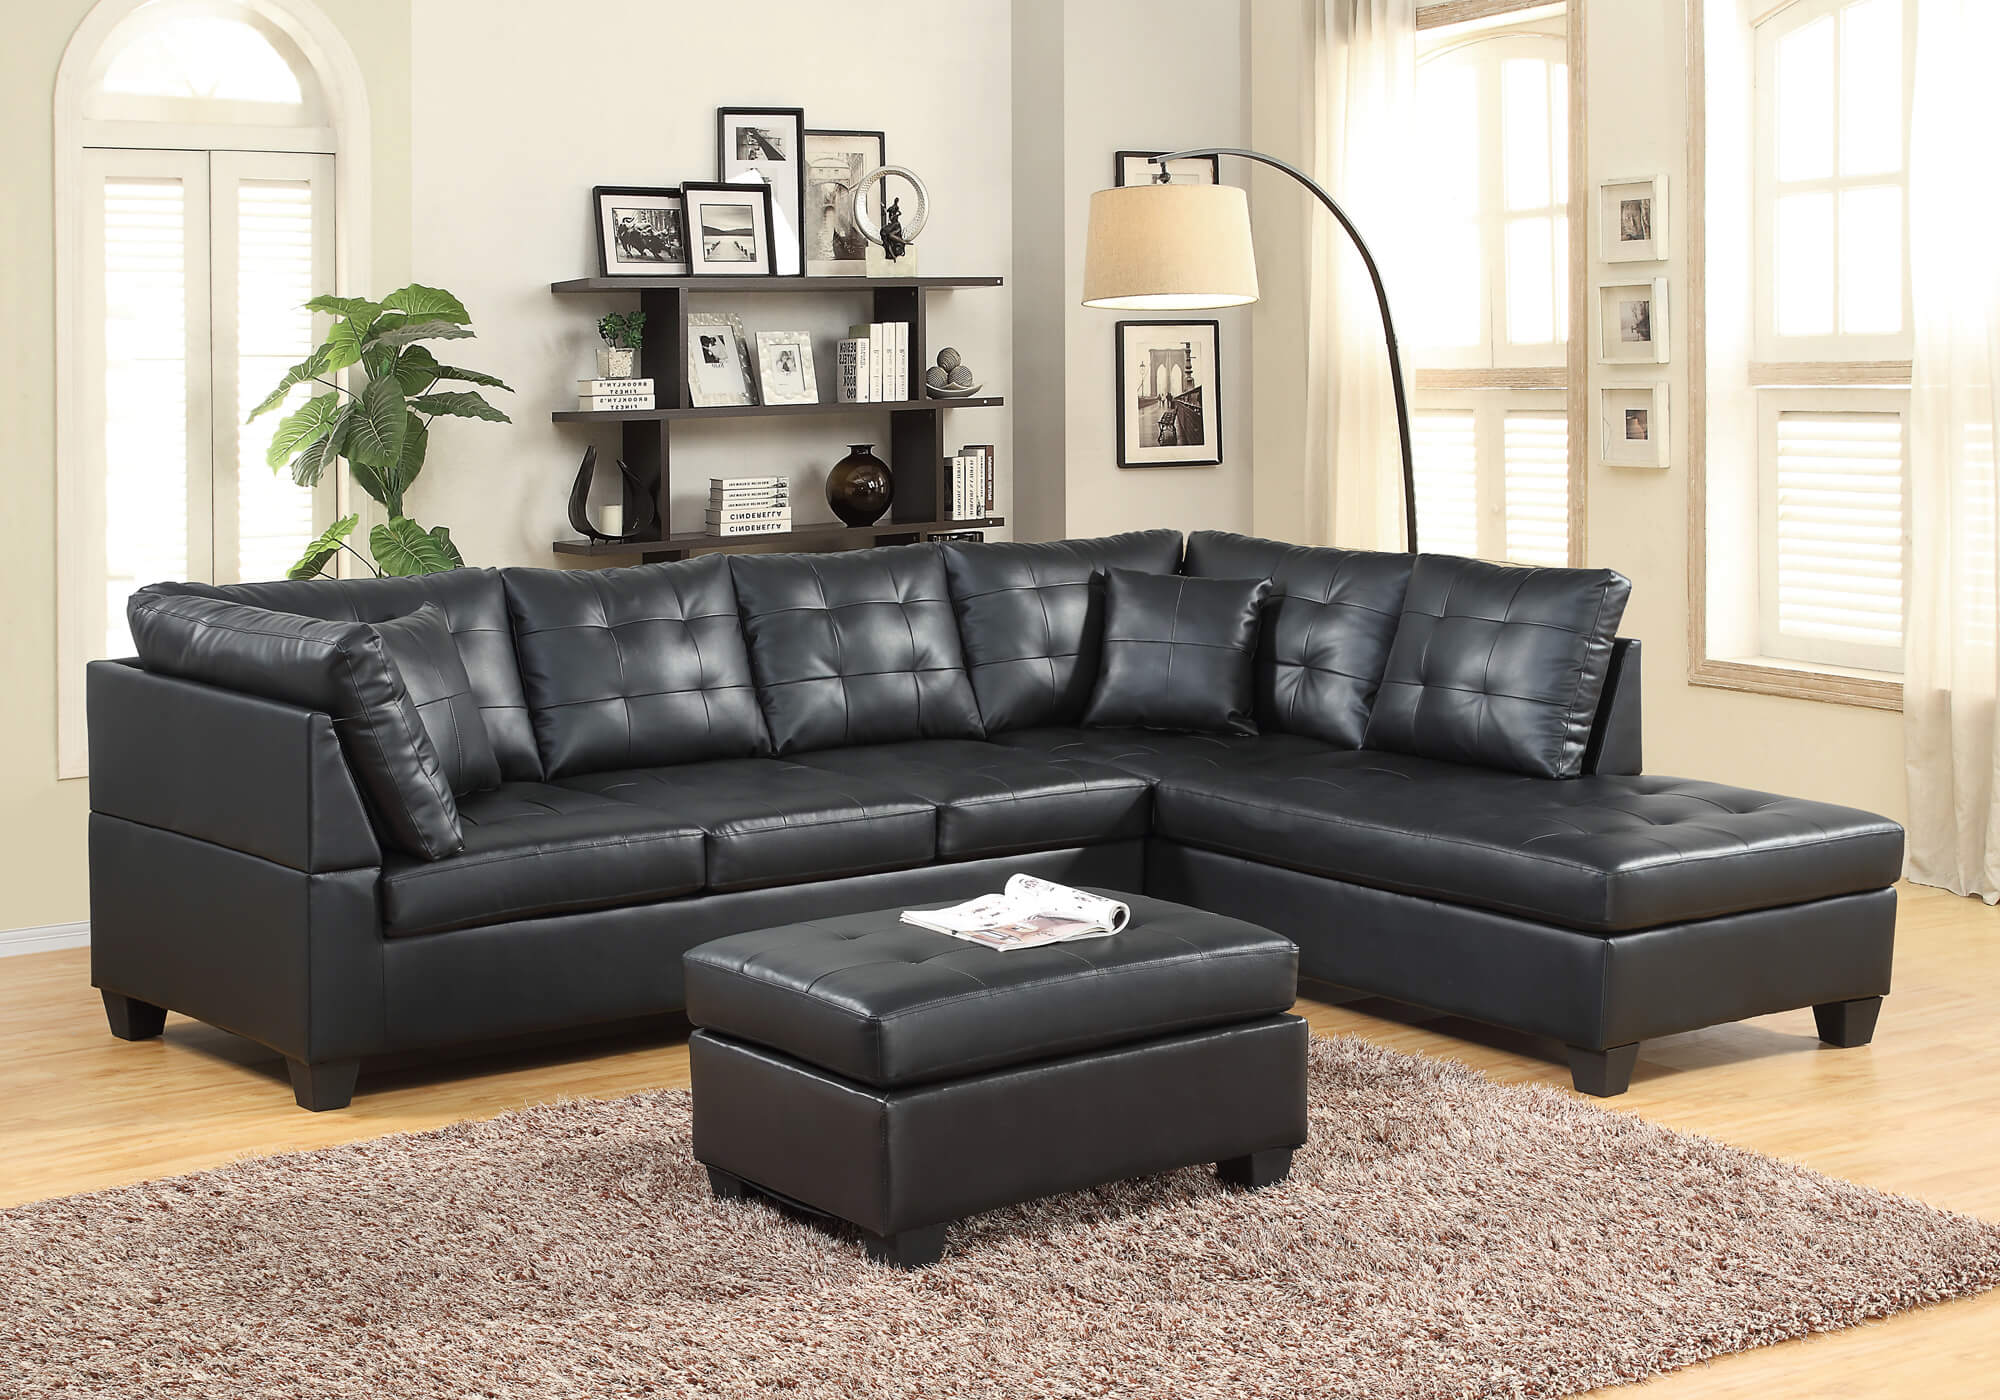 Sofa Set For Drawing Room With Price Black Leather Like Sectiona Sectional Sofa Sets